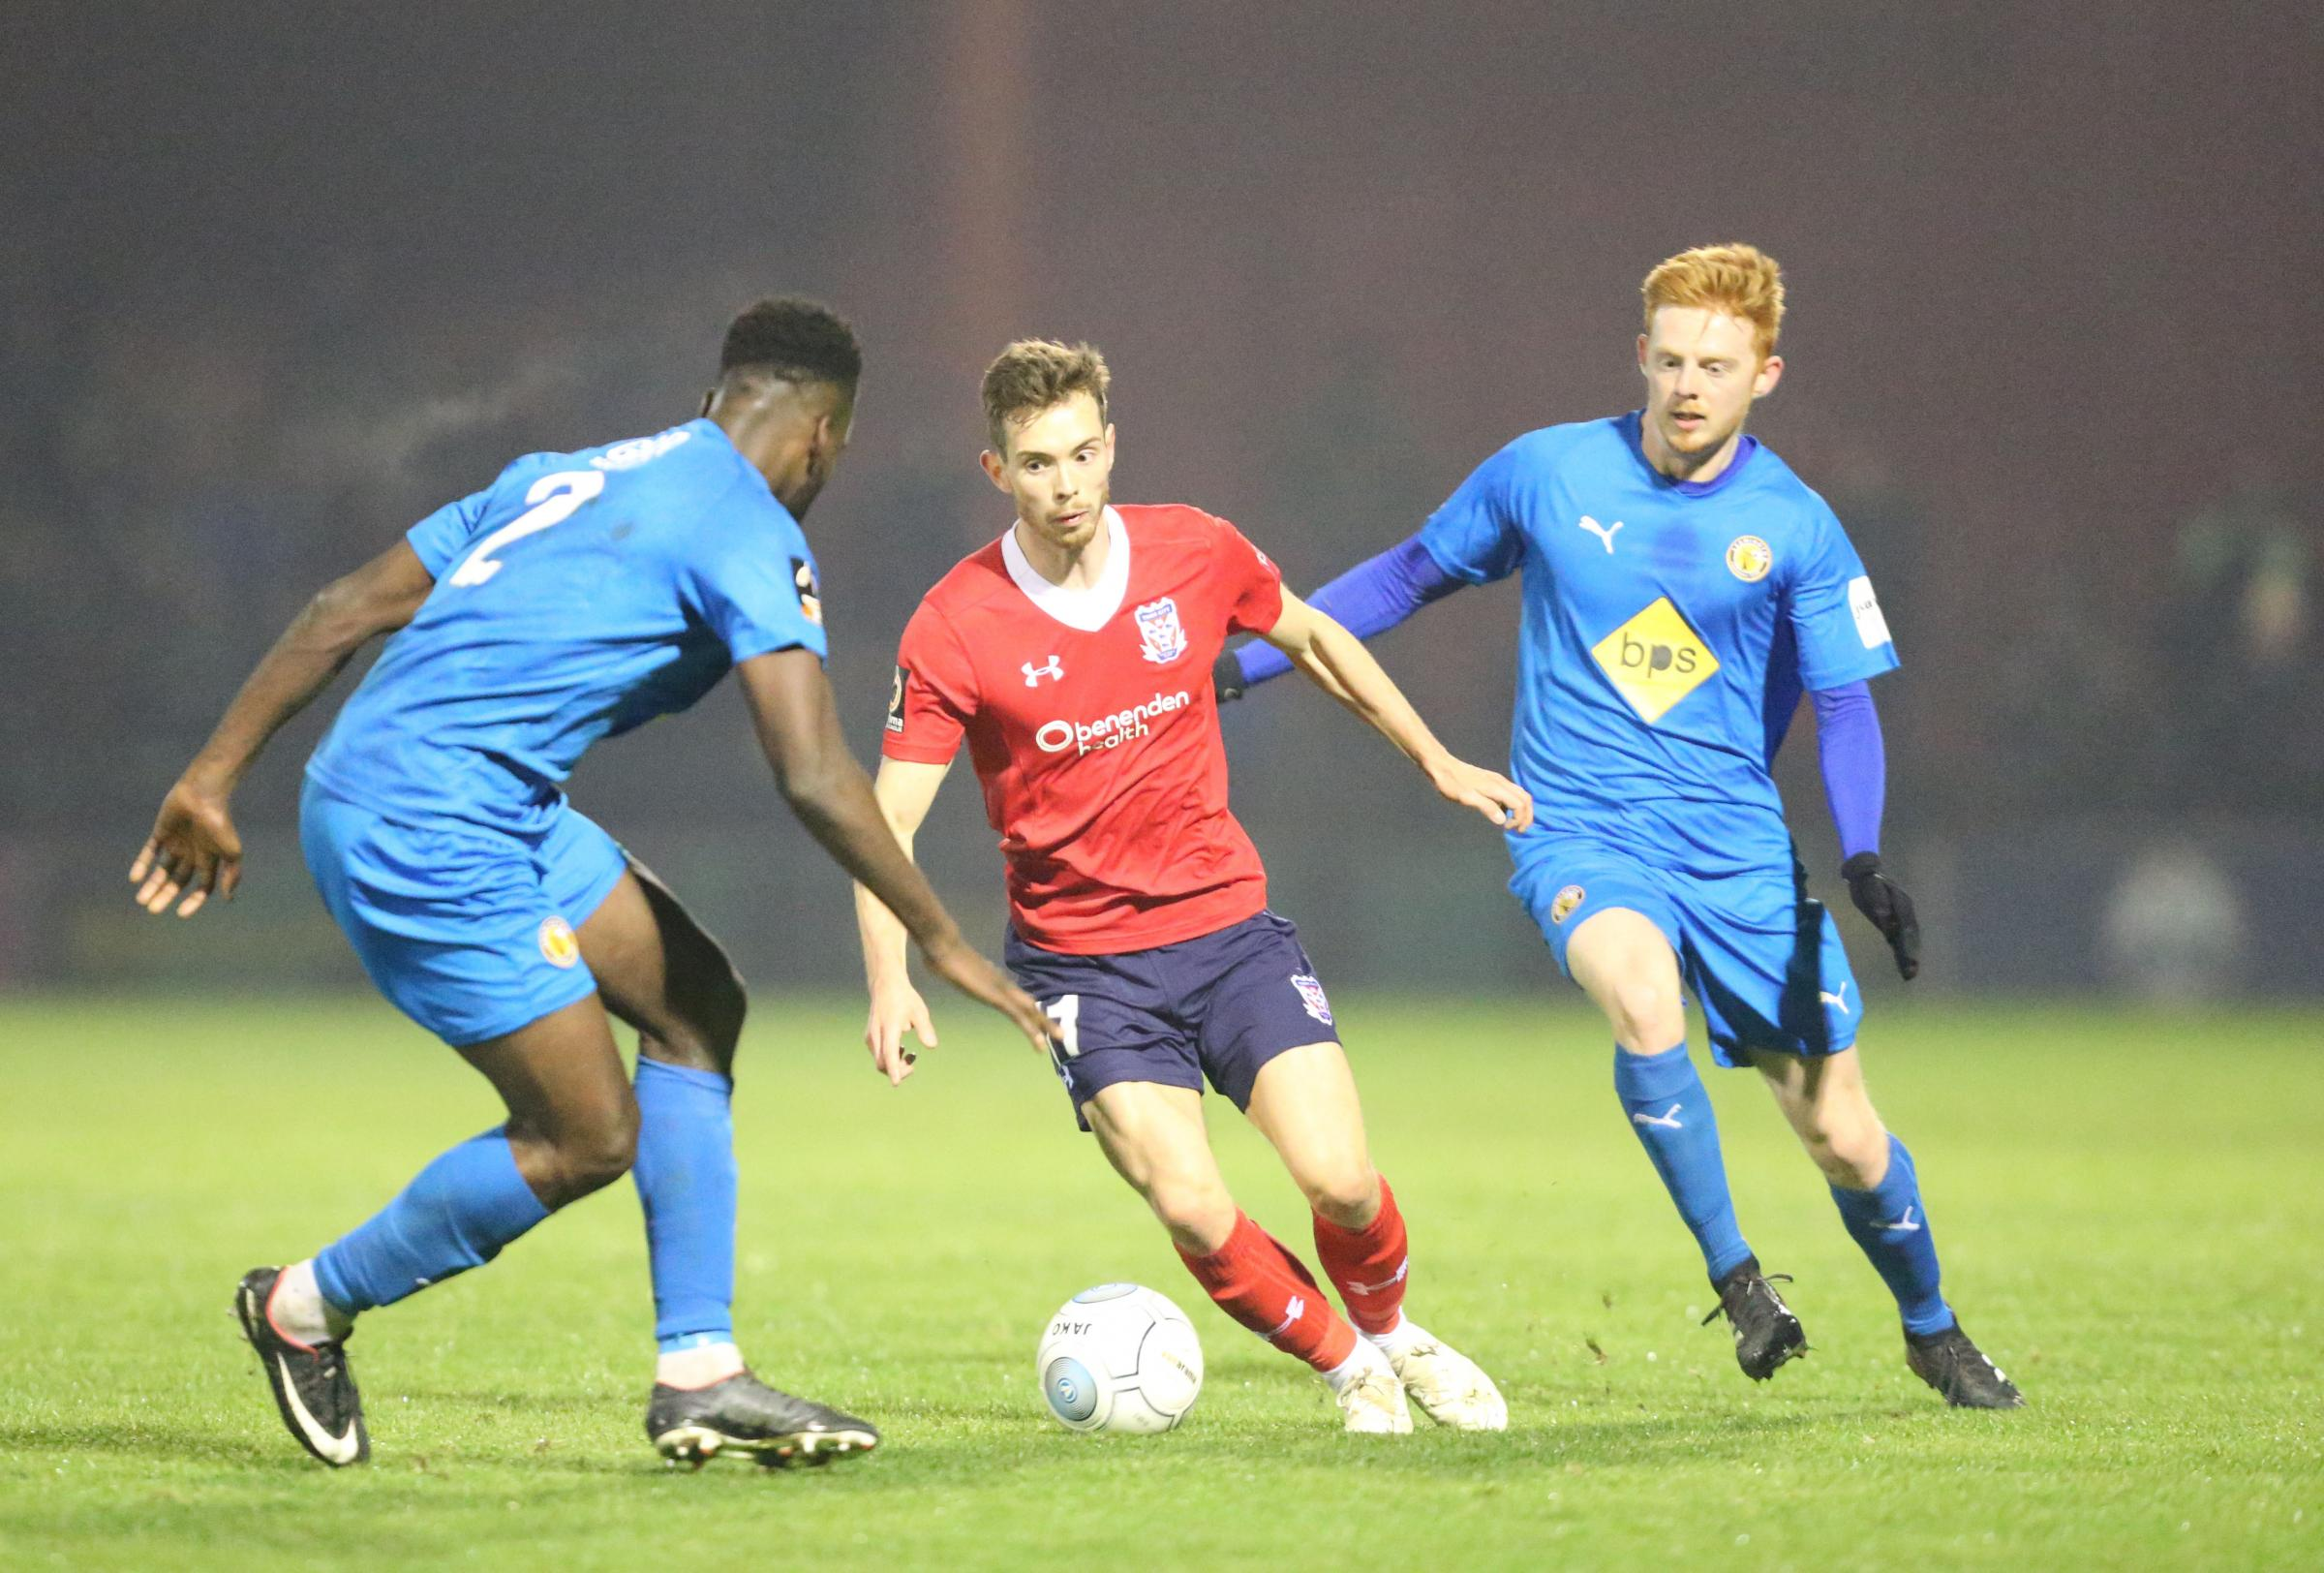 PILGRIMS TRAVELLER: Alex Bray is expected to make the coach to Boston, despite picking up a hamstring niggle against Leamington on Tuesday night. Picture: Gordon Clayton